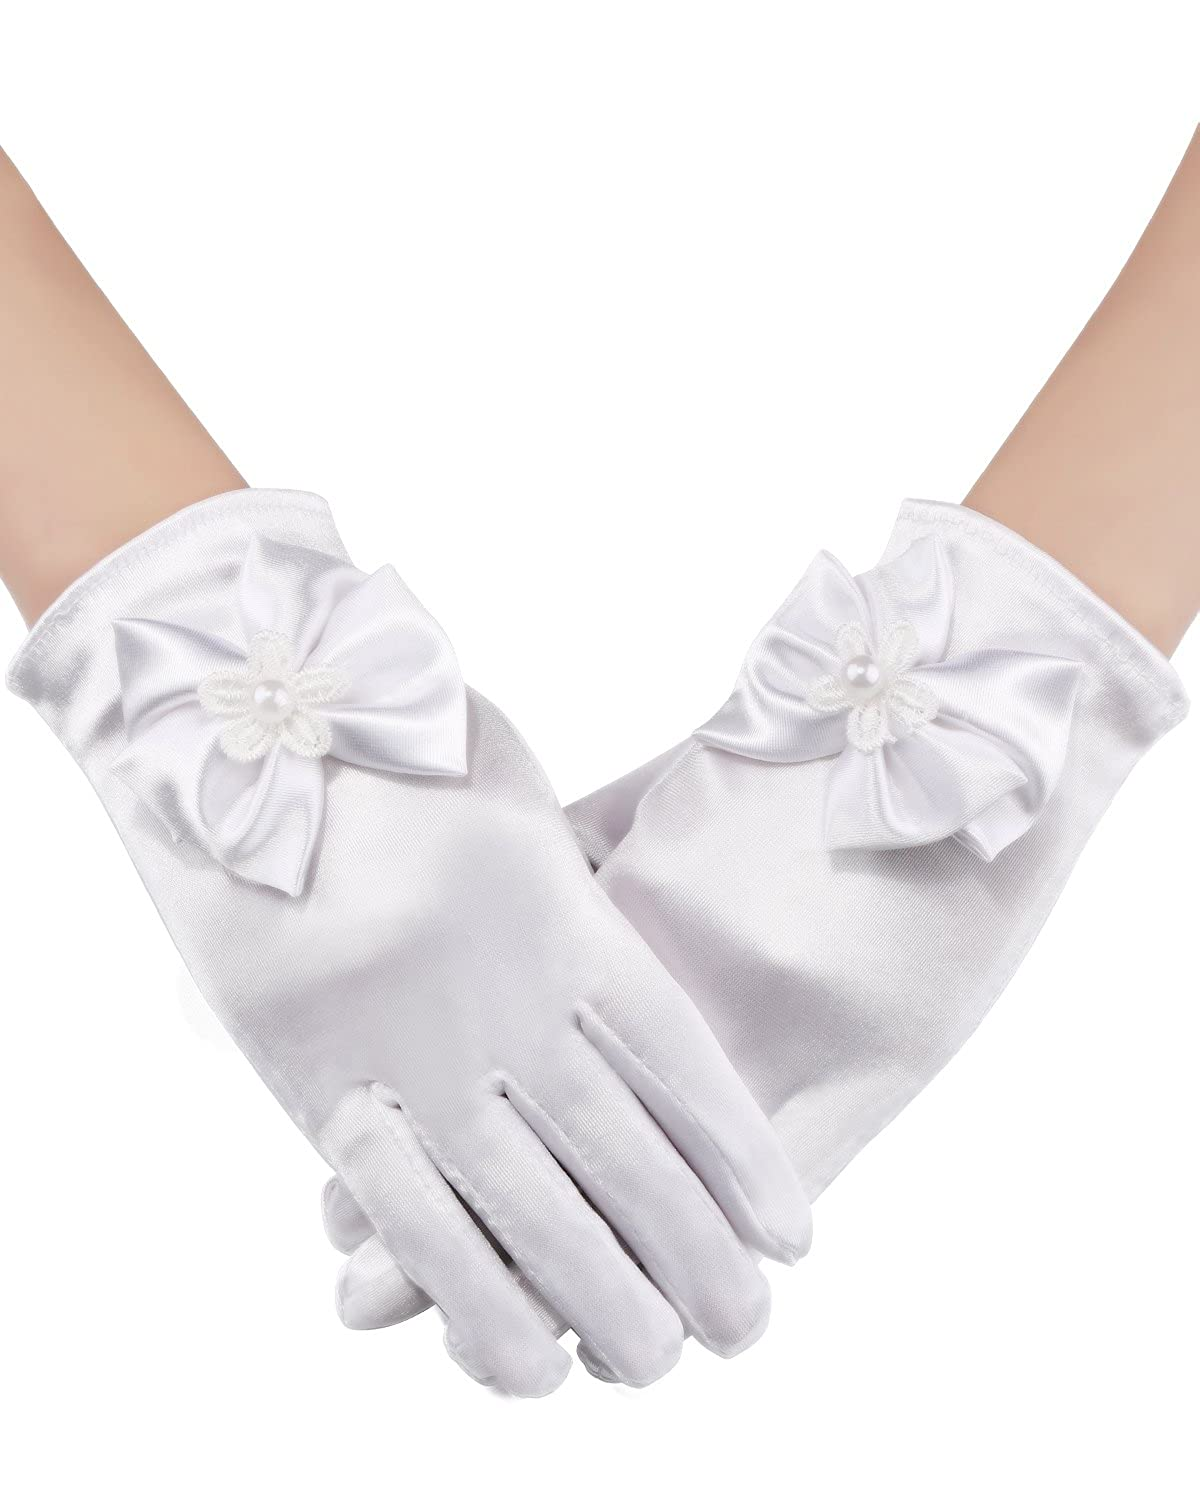 Sumind Girls Satin Gloves Kids Size Formal Gloves Bow Knot Pearl Glove for Wedding Pageant Parties, White (Wrist Length)